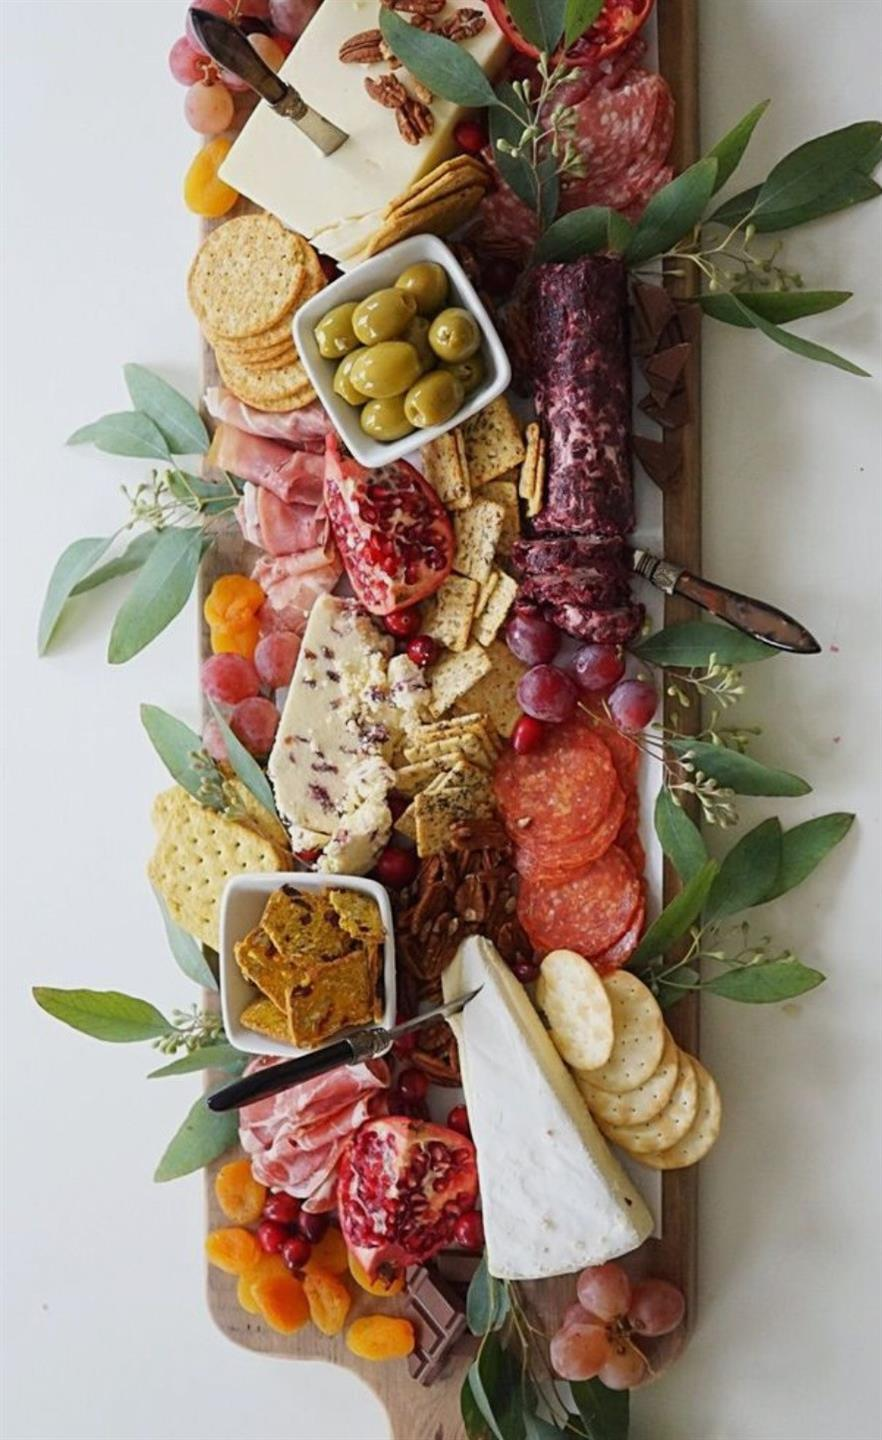 Charcuterie board full of cheeses, meats, olives and garnish